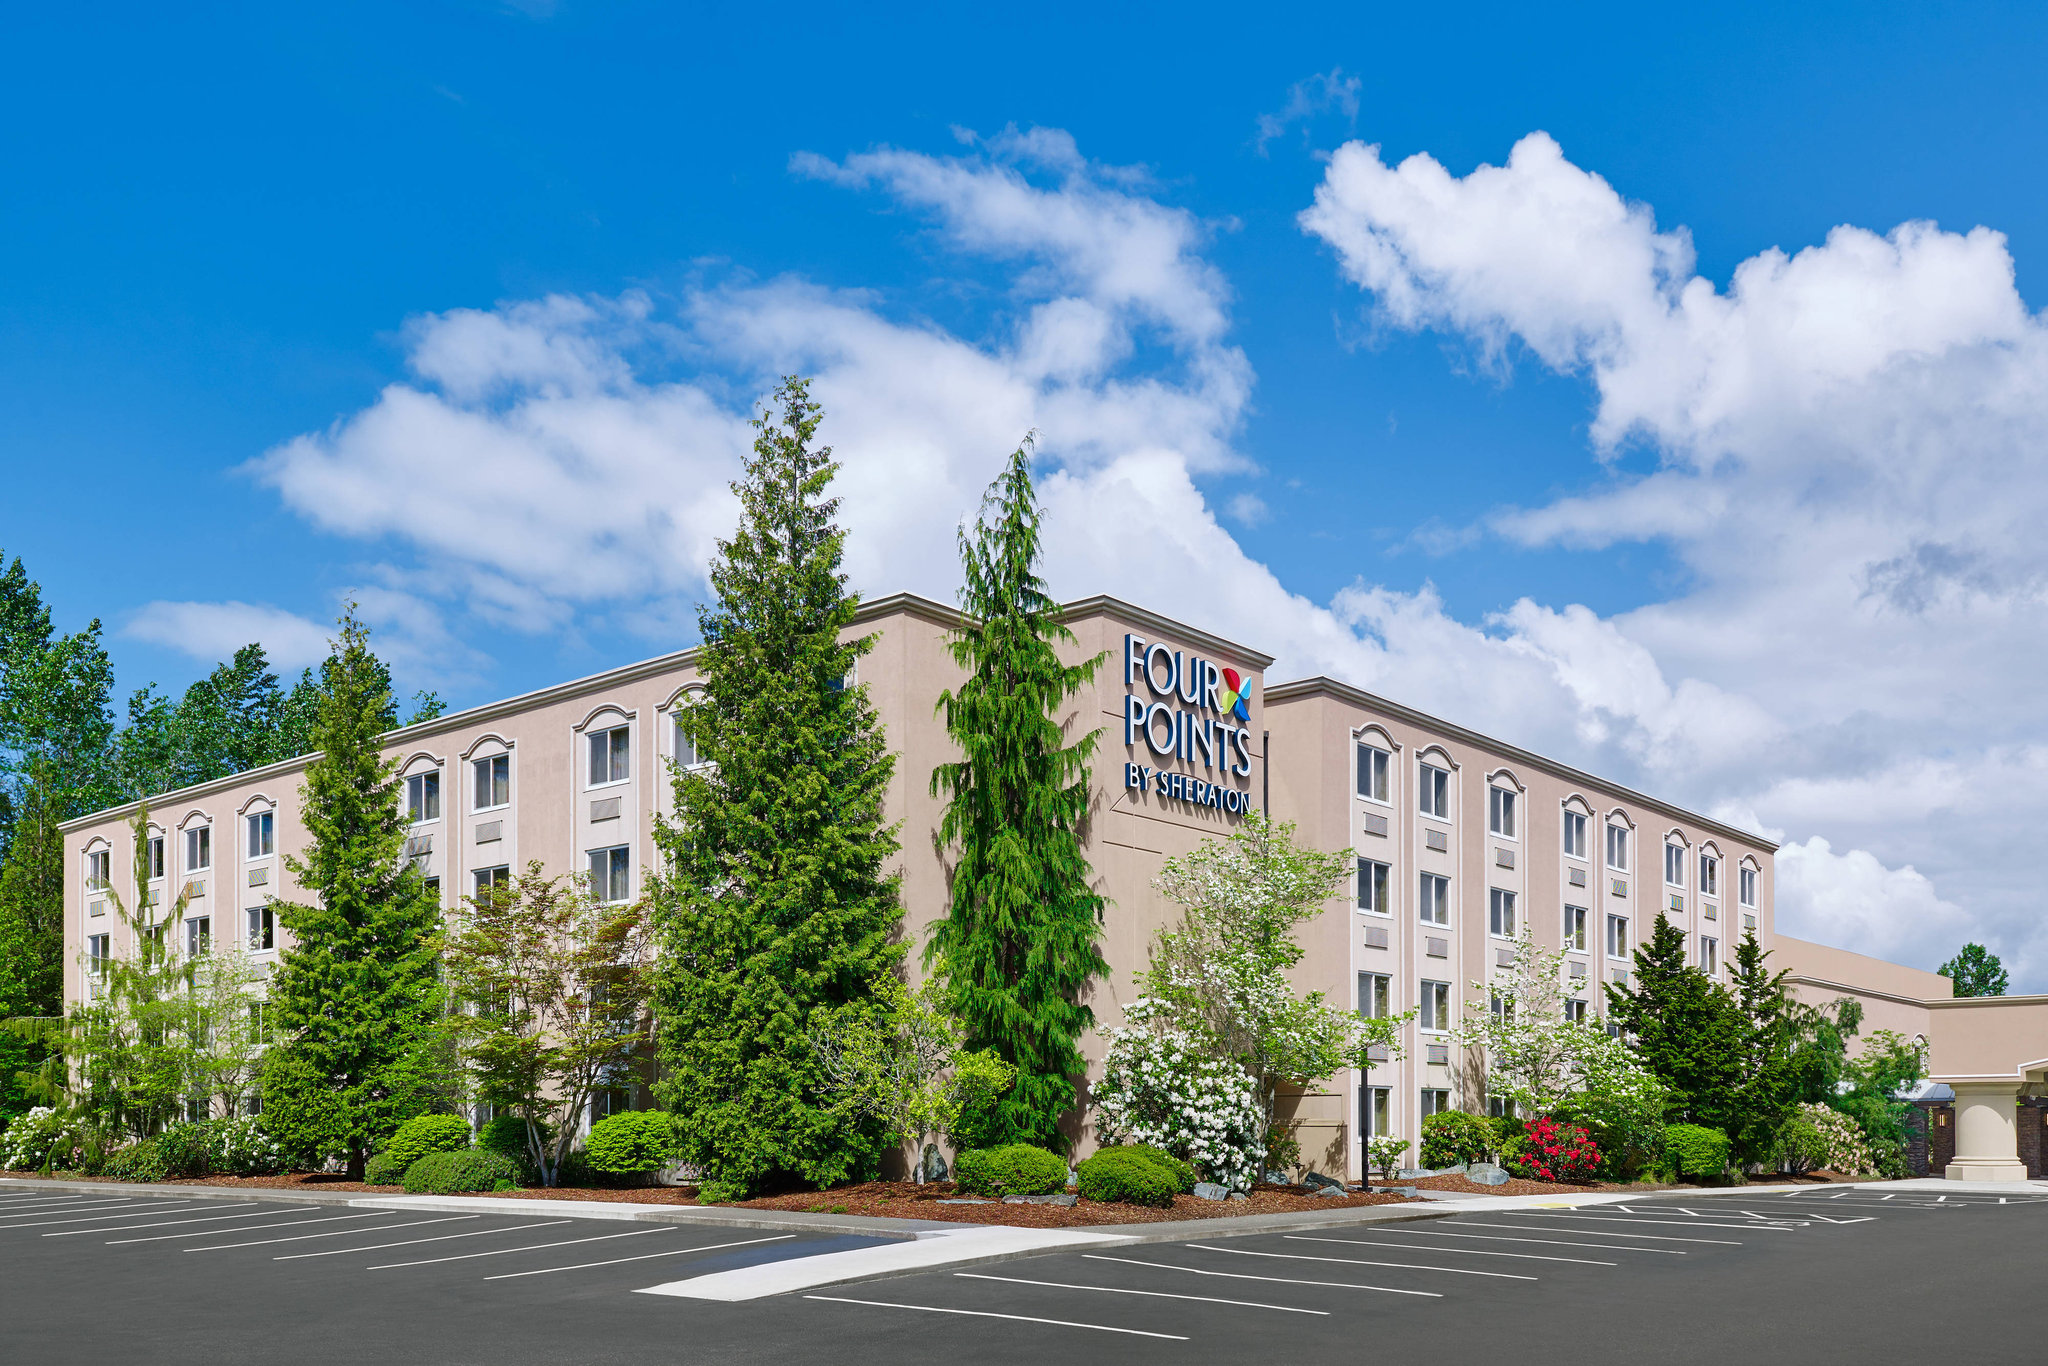 Four Points by Sheraton Bellingham Hotel and Conference Center